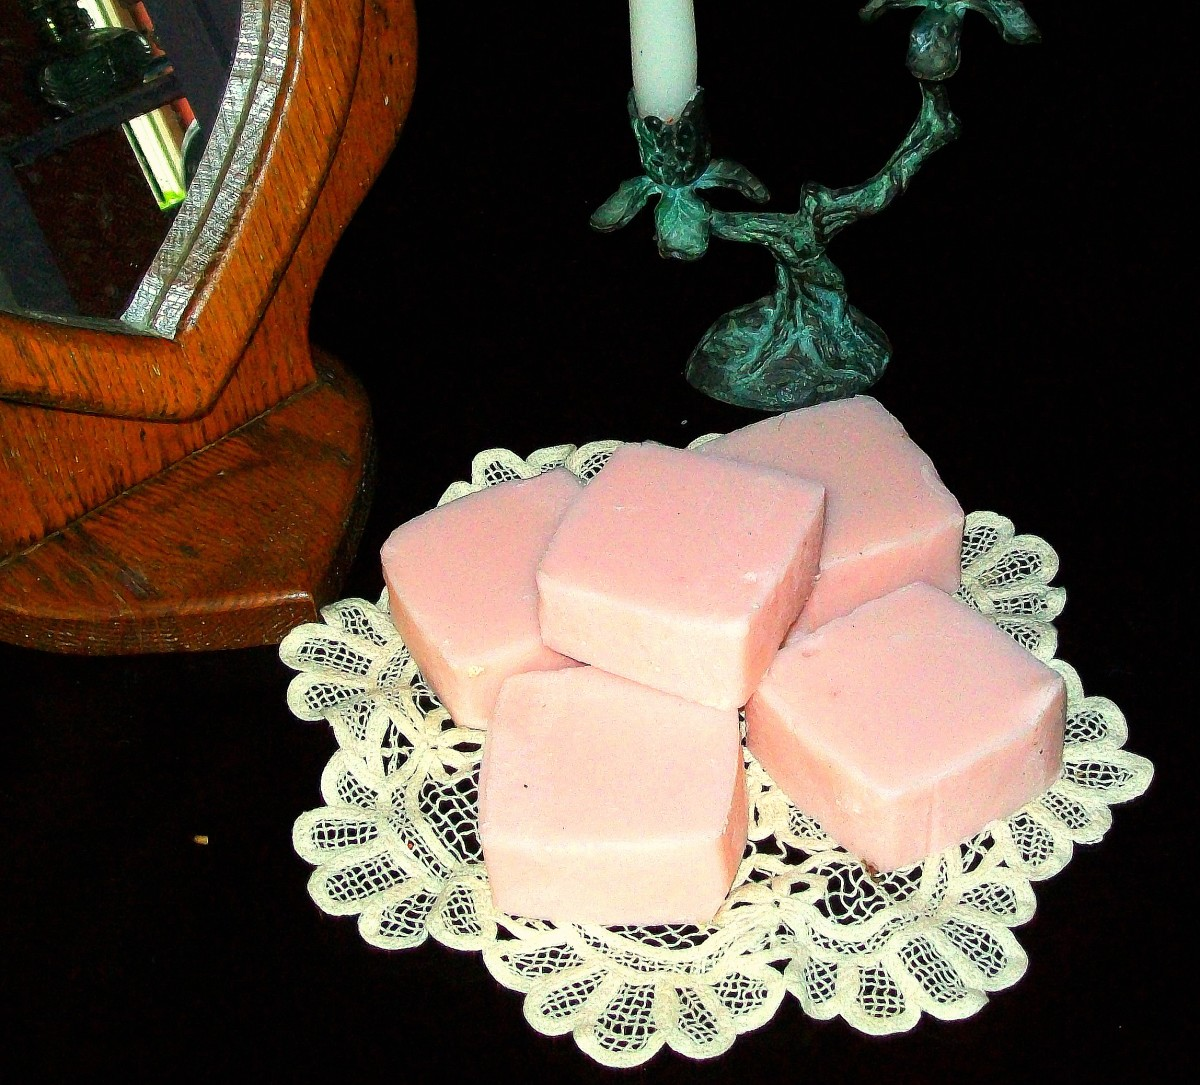 Homemade coconut oil soap with a few drops of red food coloring!